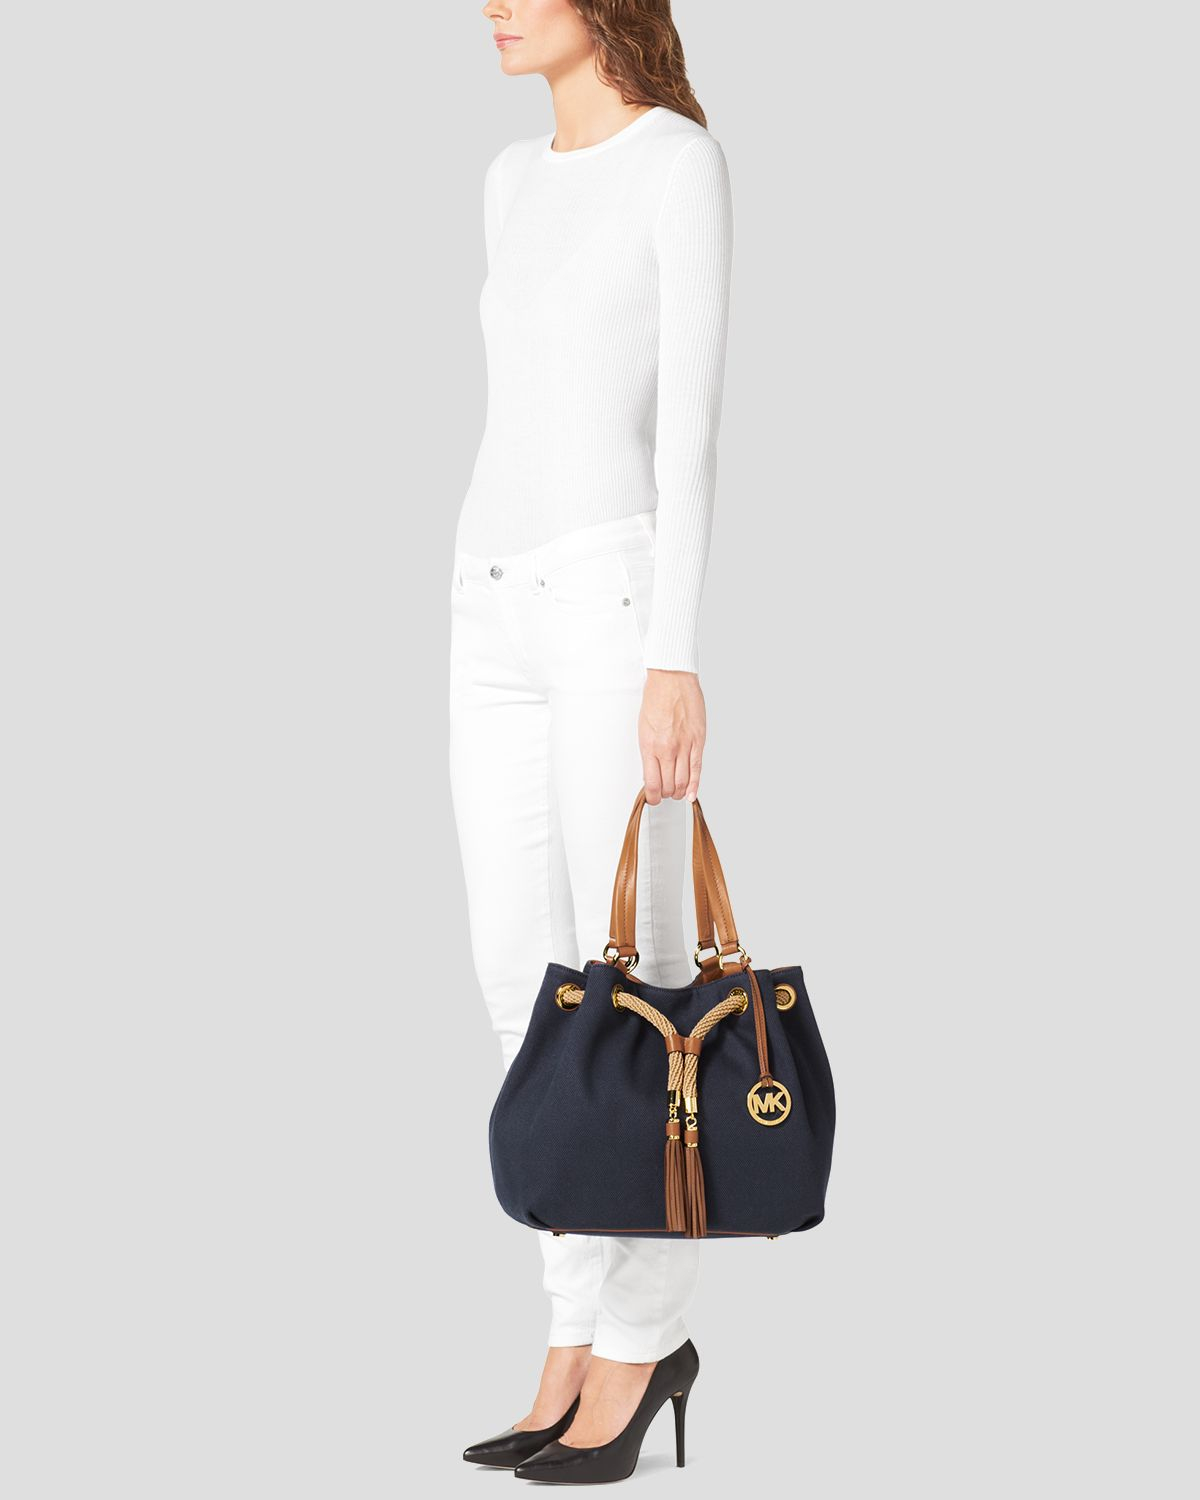 3af314fc4bbe ... where can i buy gallery. previously sold at bloomingdales womens michael  kors marina a686f 47b95